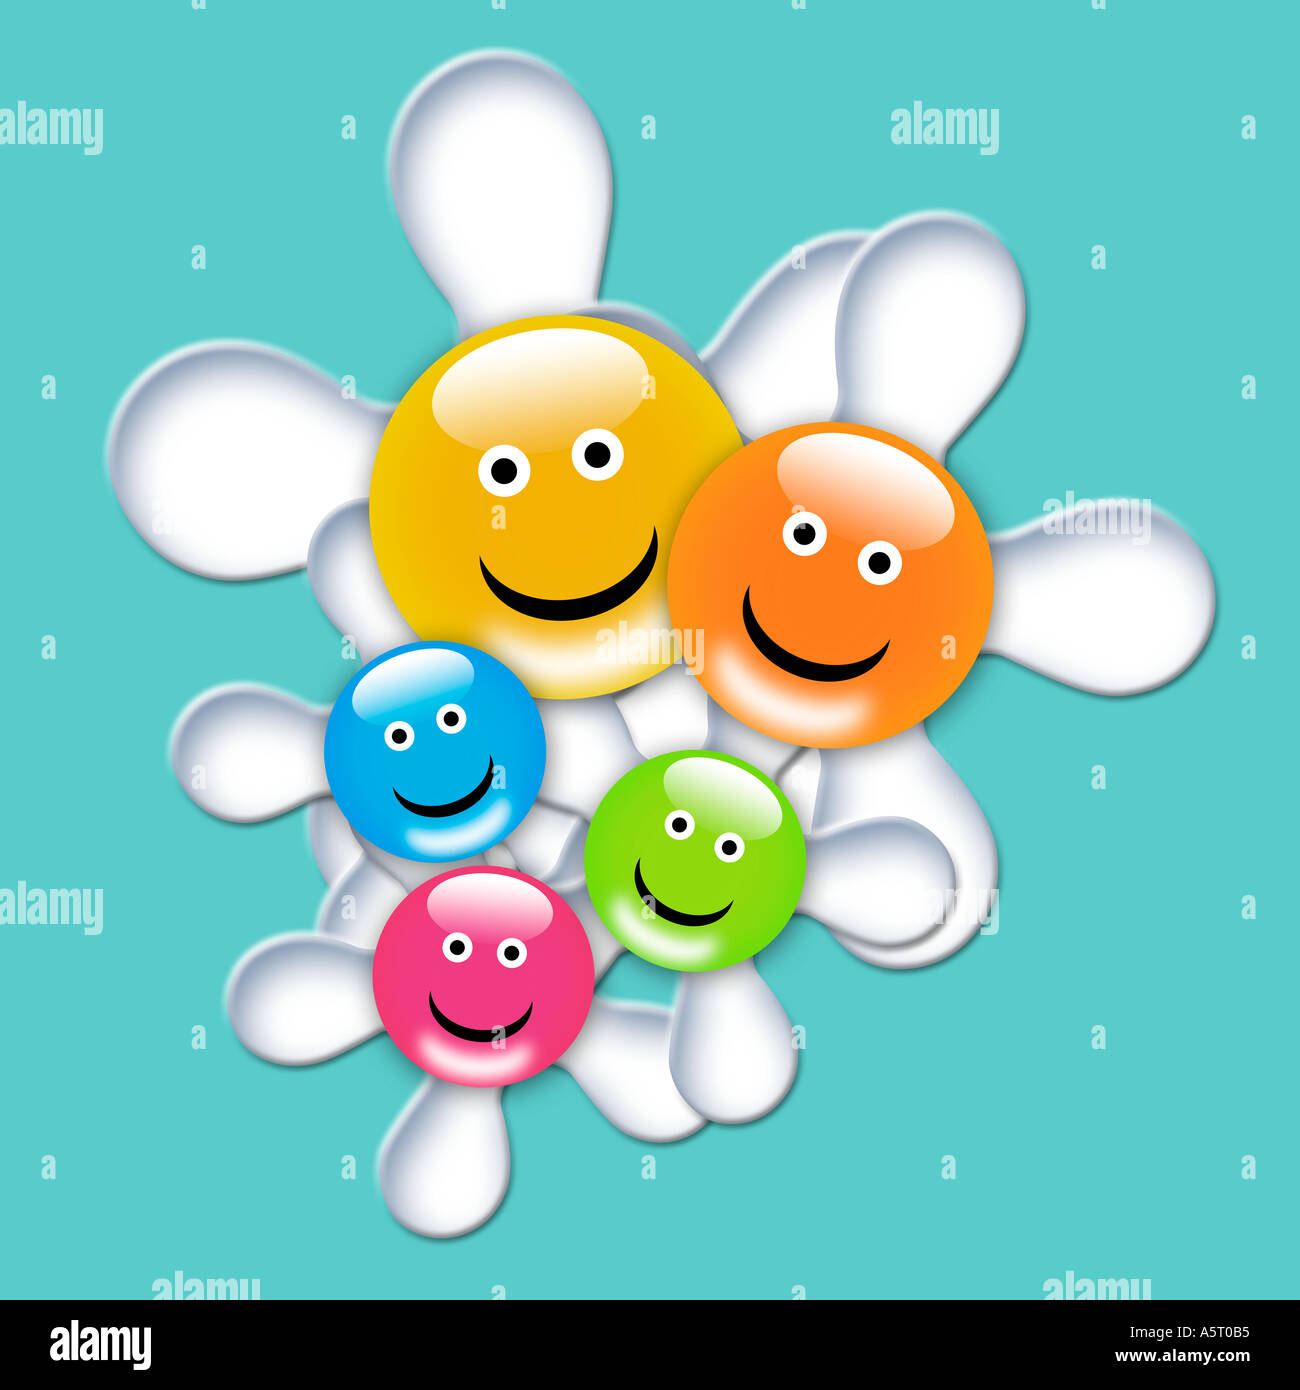 Smile flowers kids illustrations - Stock Image